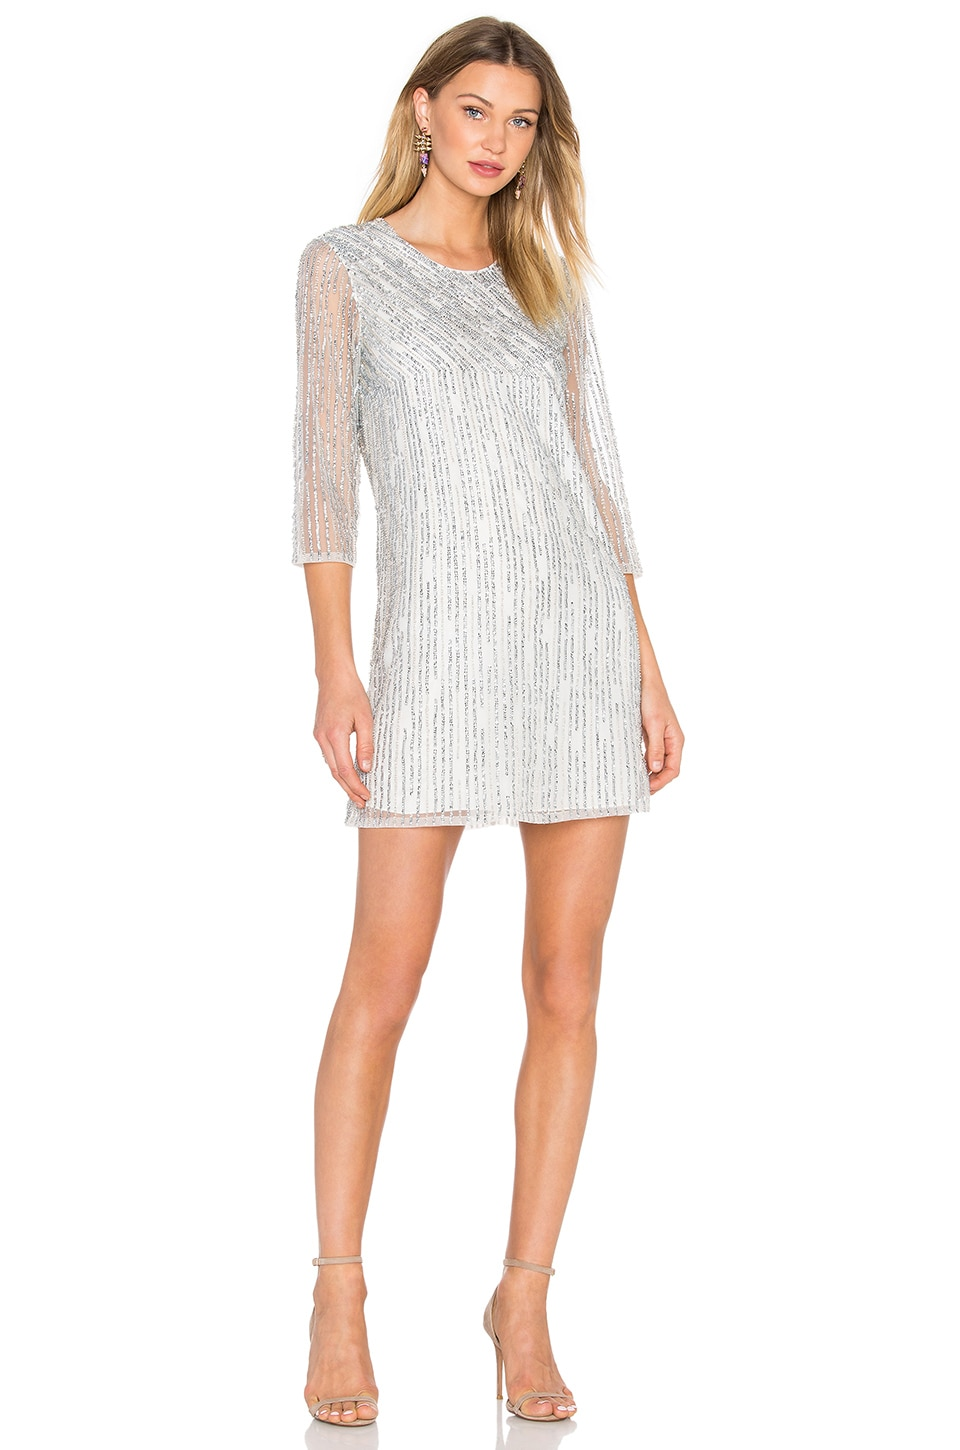 Parker Black Petra Embellished Dress in Silver